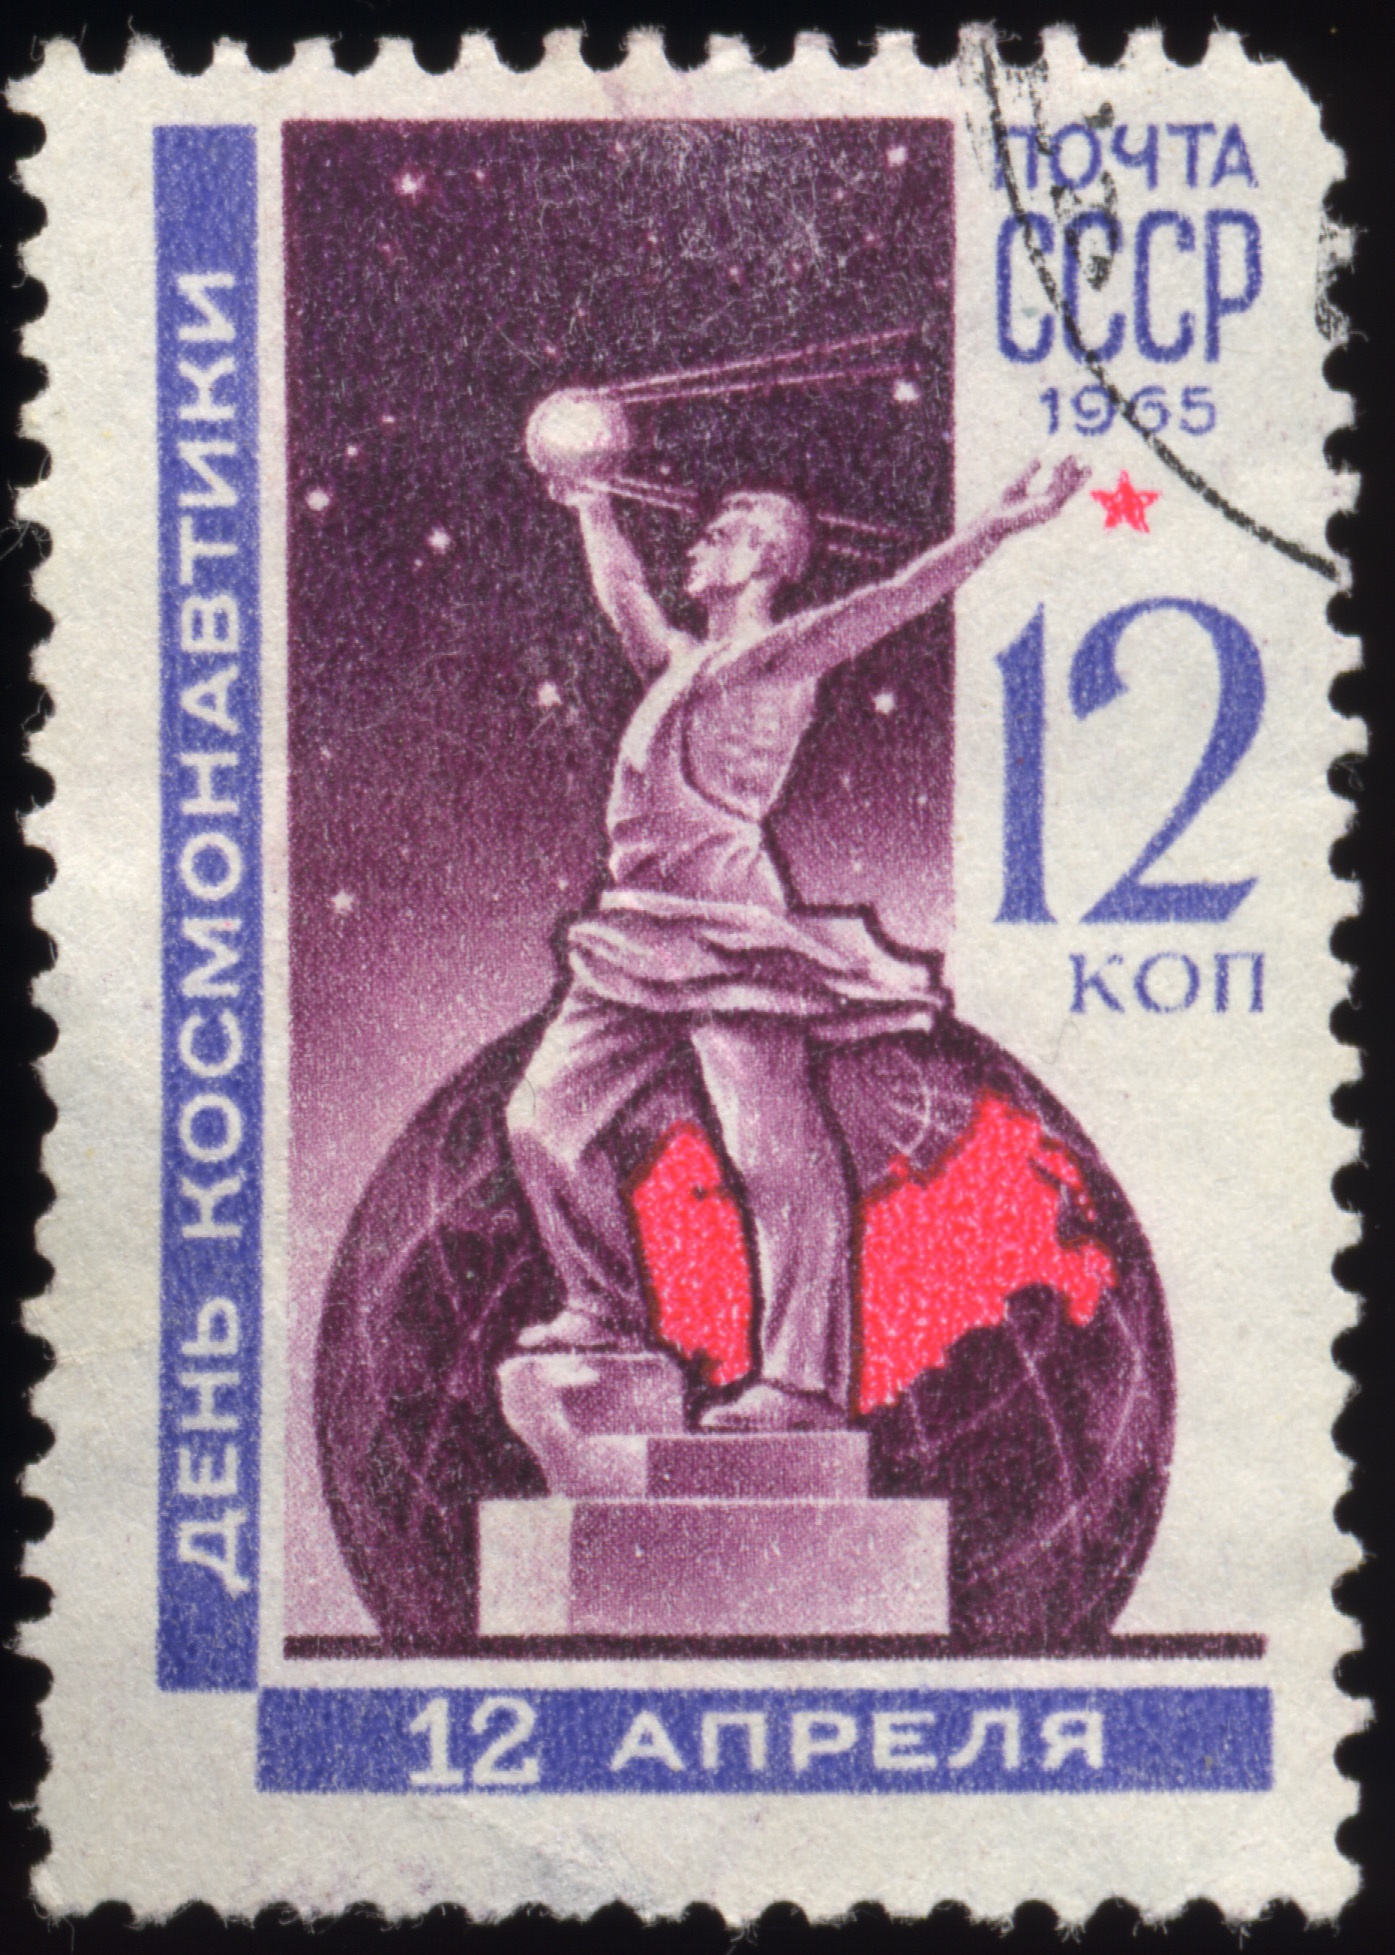 Soviet Union 1965 Stamp 0.12. Cosmonautics Day